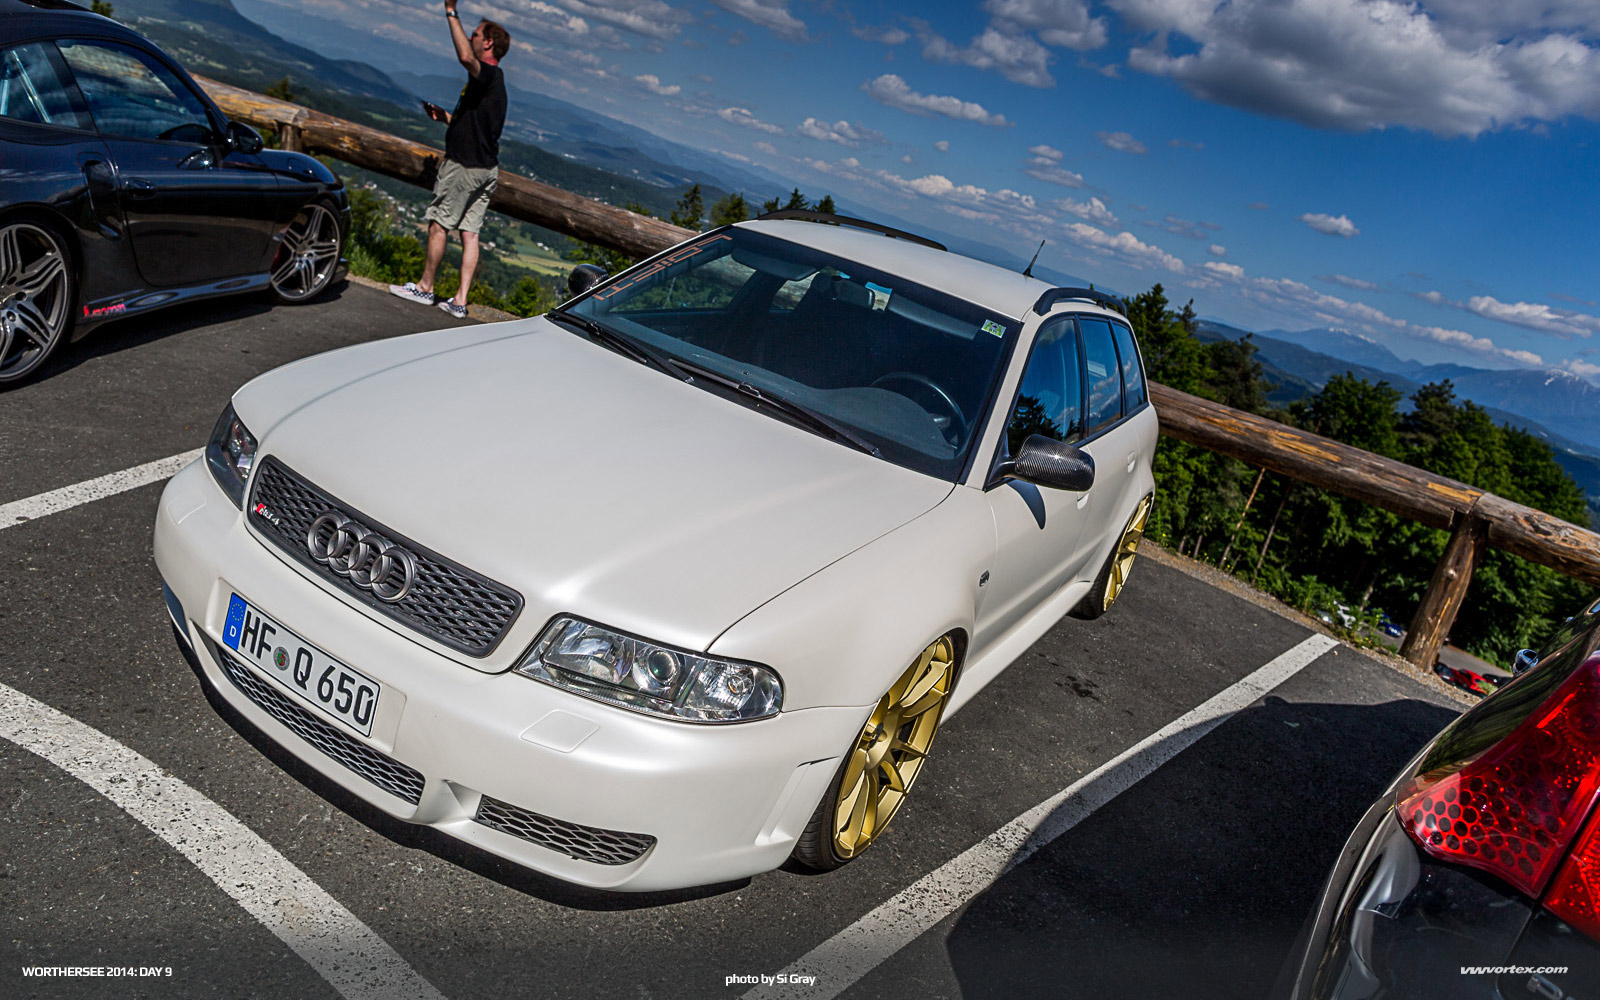 SiGray.Worthersee2014-8498